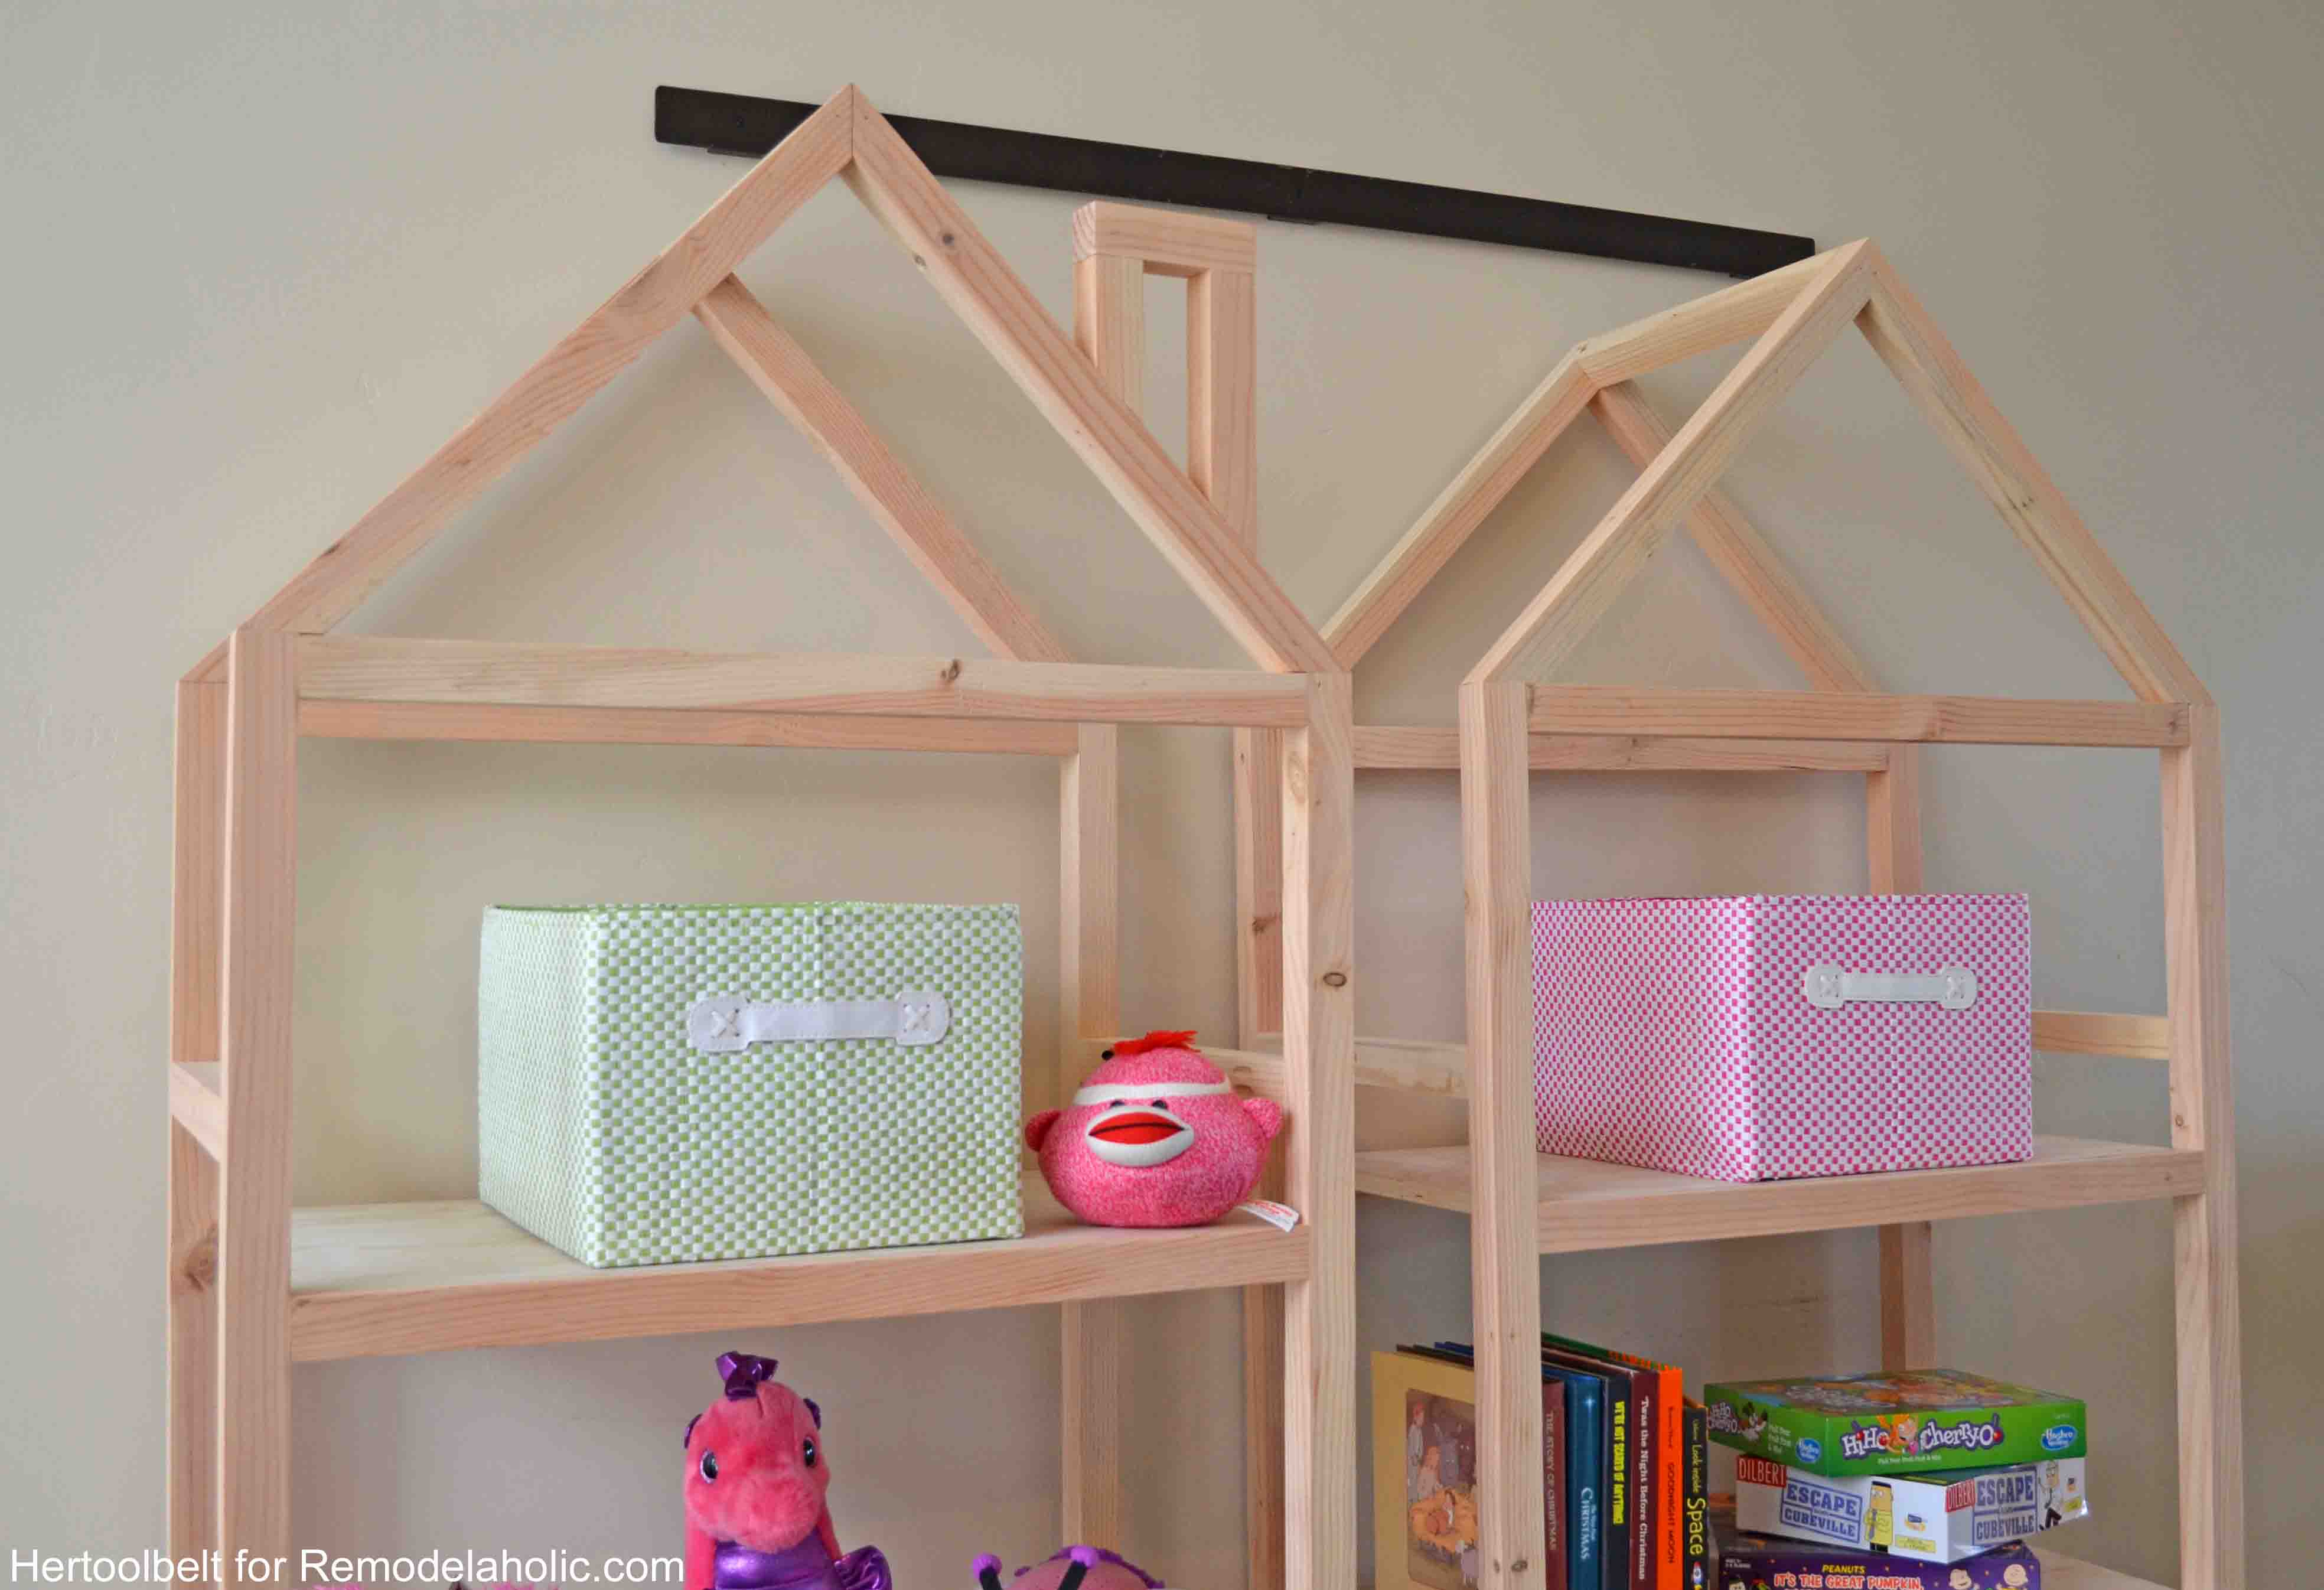 Baby cribs plans to build - Designconfidential Free Plans Try Your Own Google Search For Baby Crib Woodworking Plans Software Cribs Canopy Cribs Follow The Process Of Building